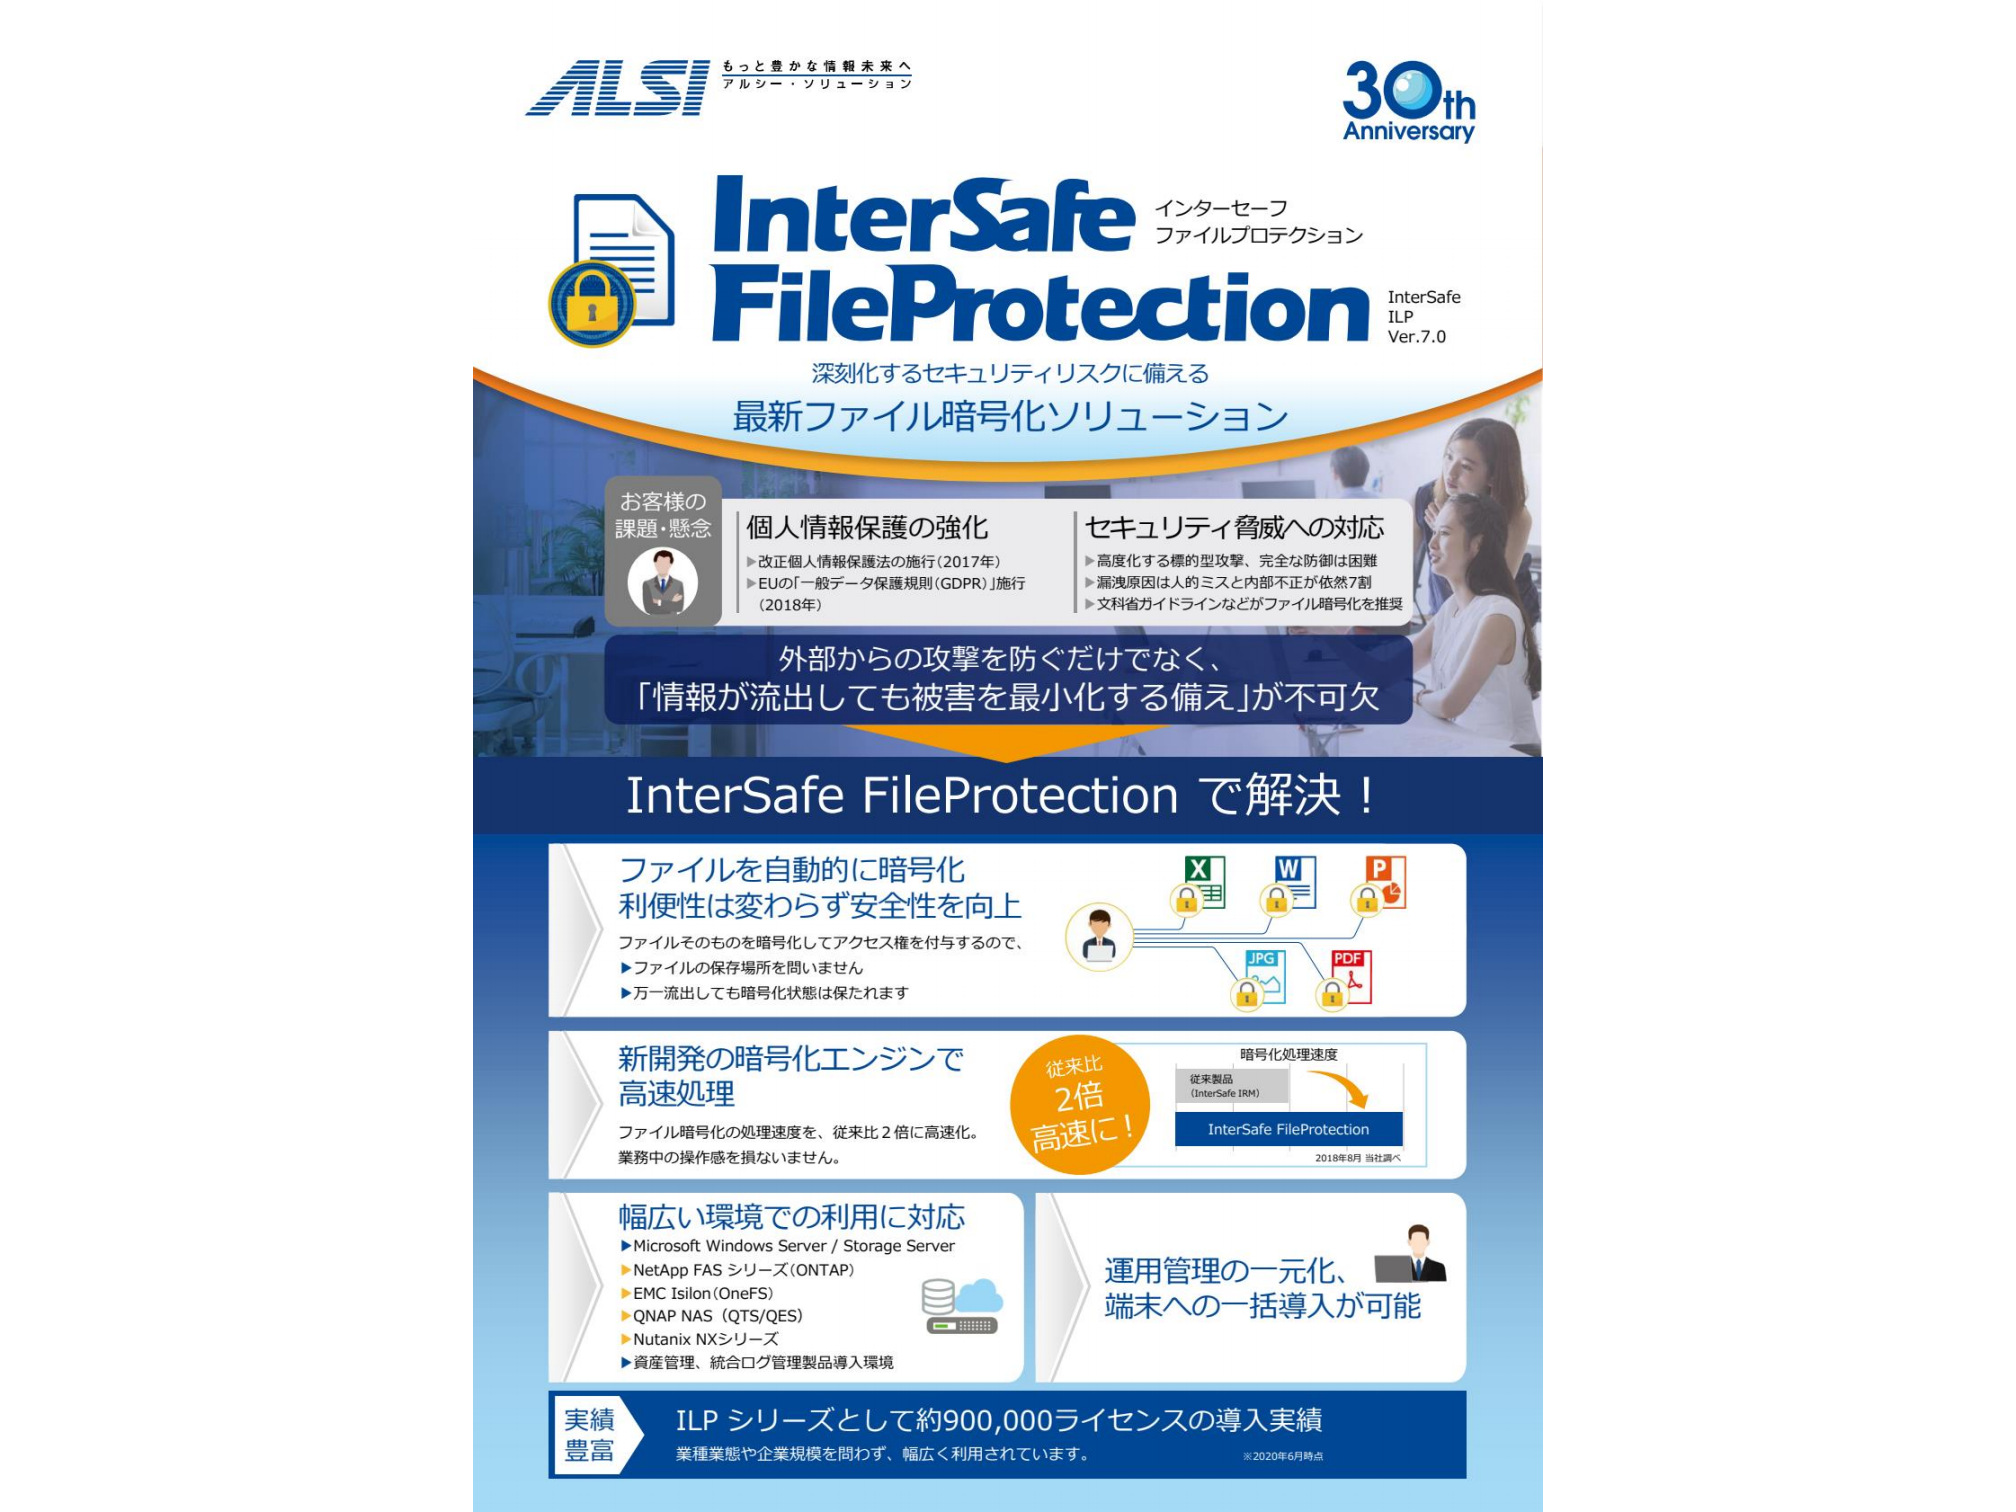 InterSafe FileProtection